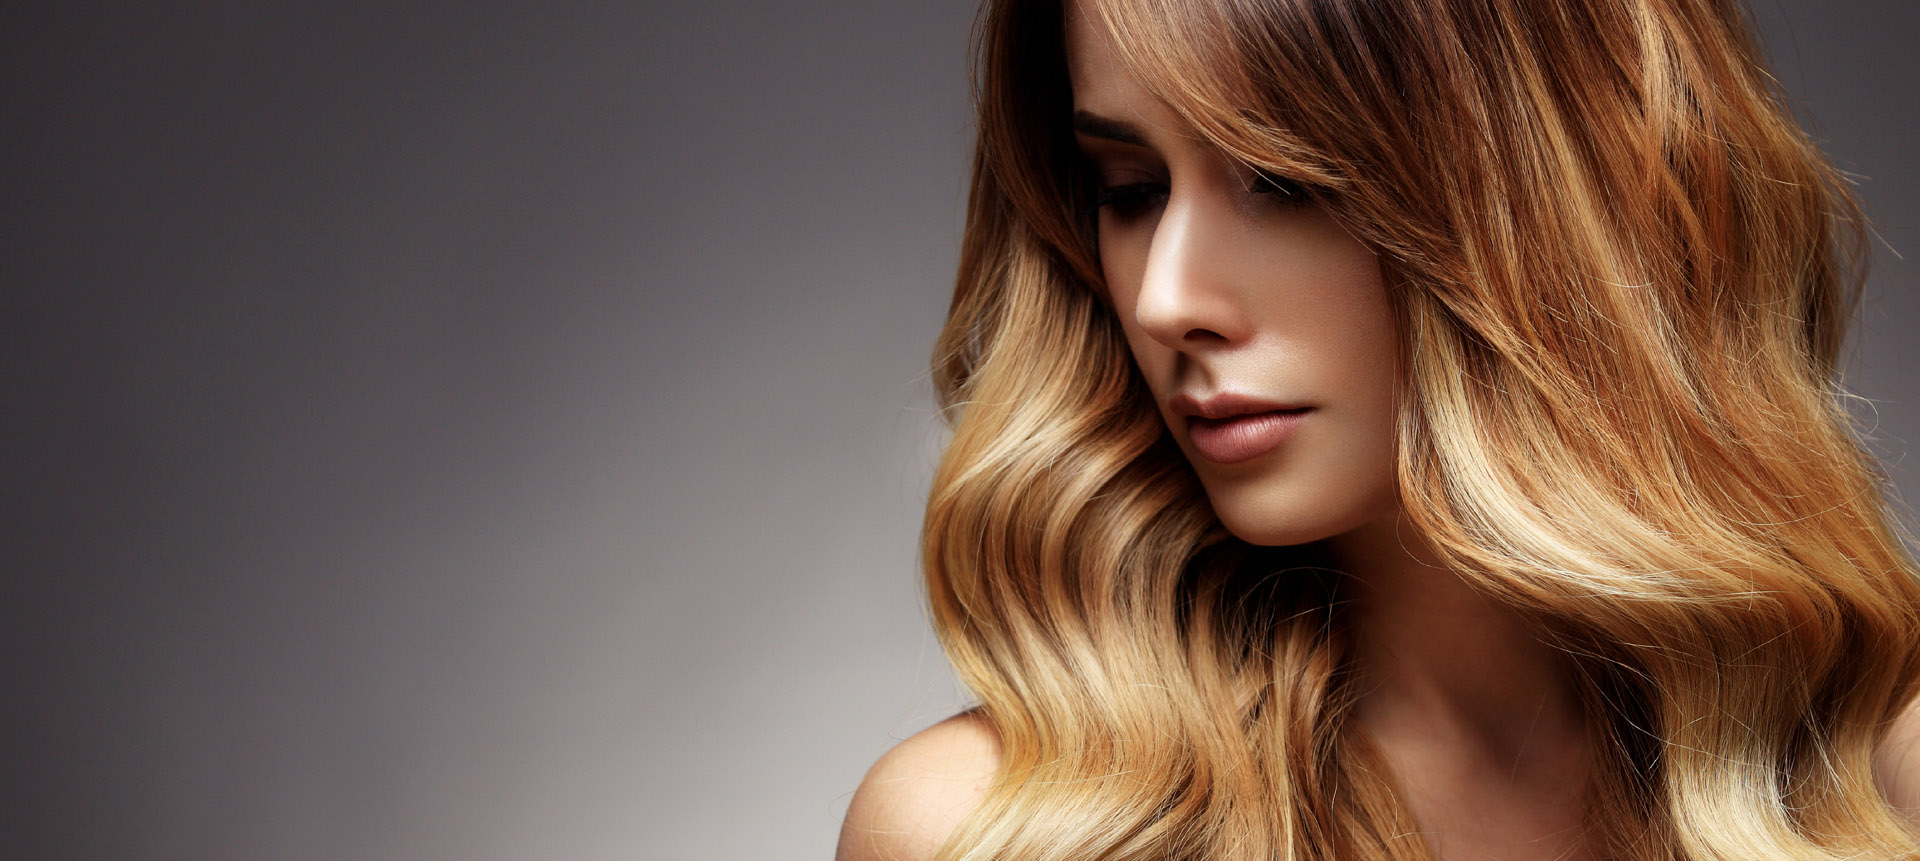 Hair Styling, Colouring and Treatments - from an amazing and inspirational team of friendly professionals